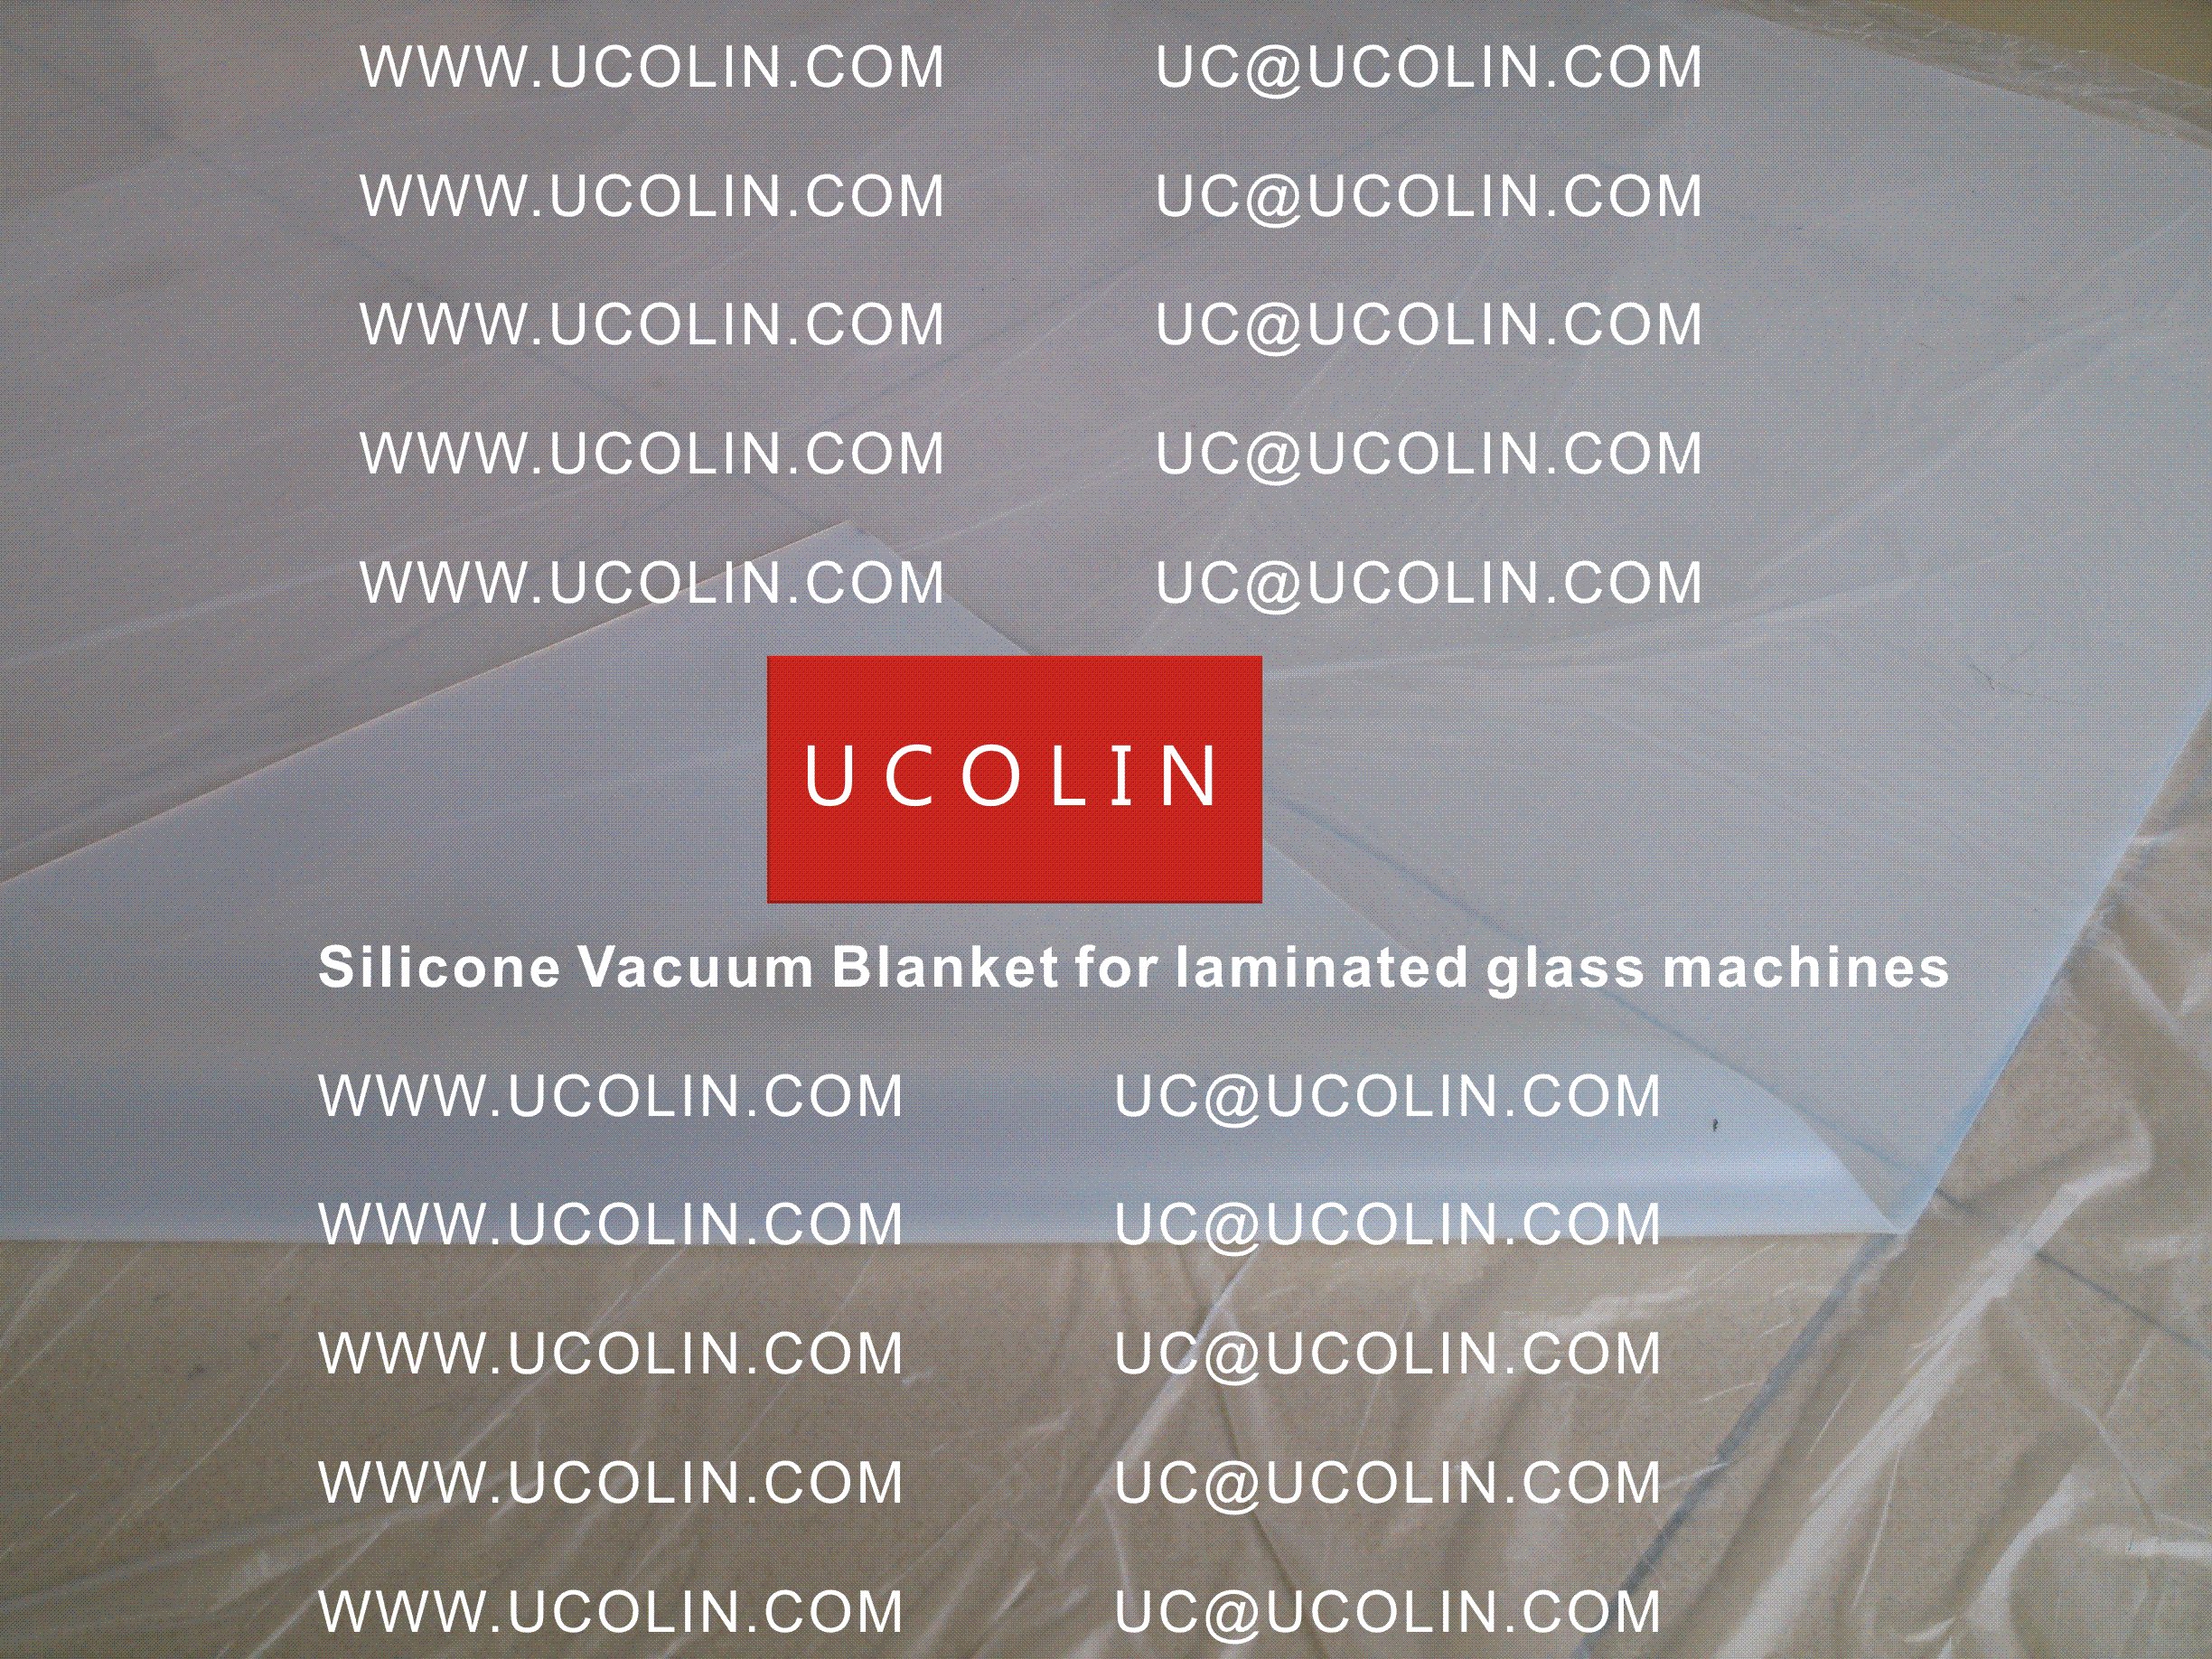 006 Silicone vacuum blanket for laminated glass machines